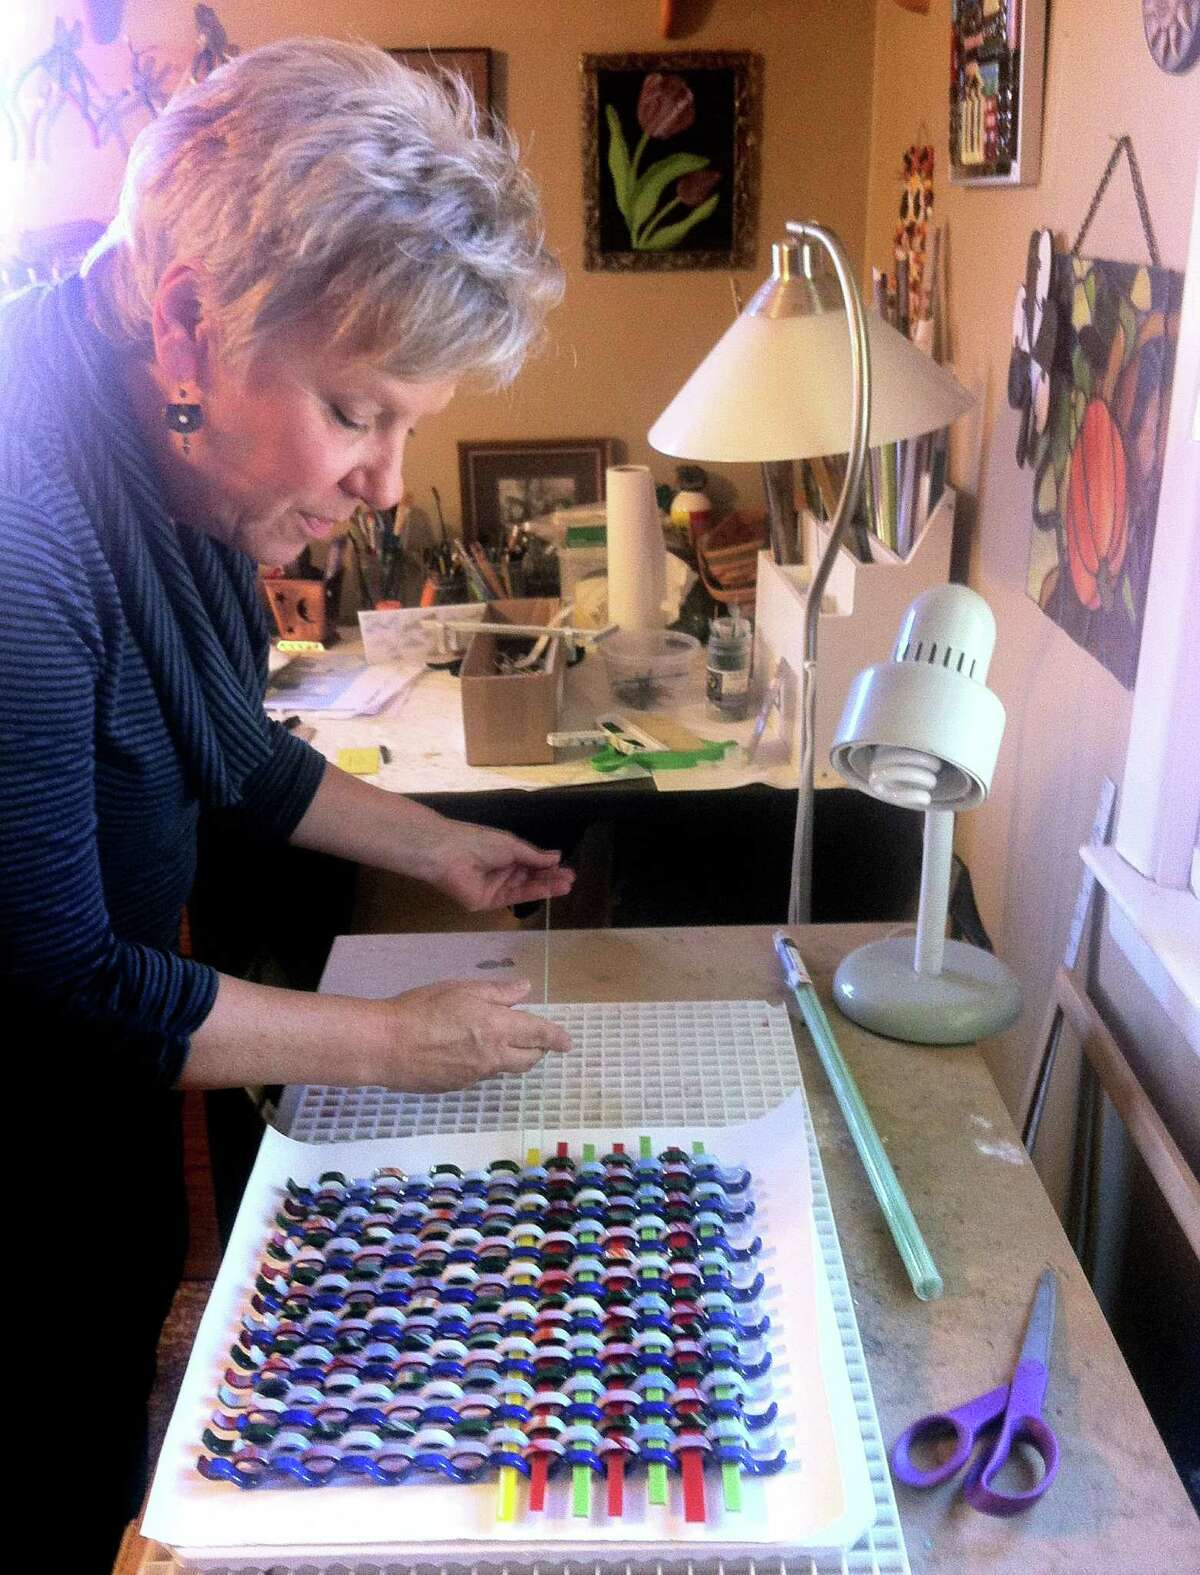 Heidrun Morgan, a glass artist from Newtown, works on one of her woven pieces at her home studio on a recent morning.